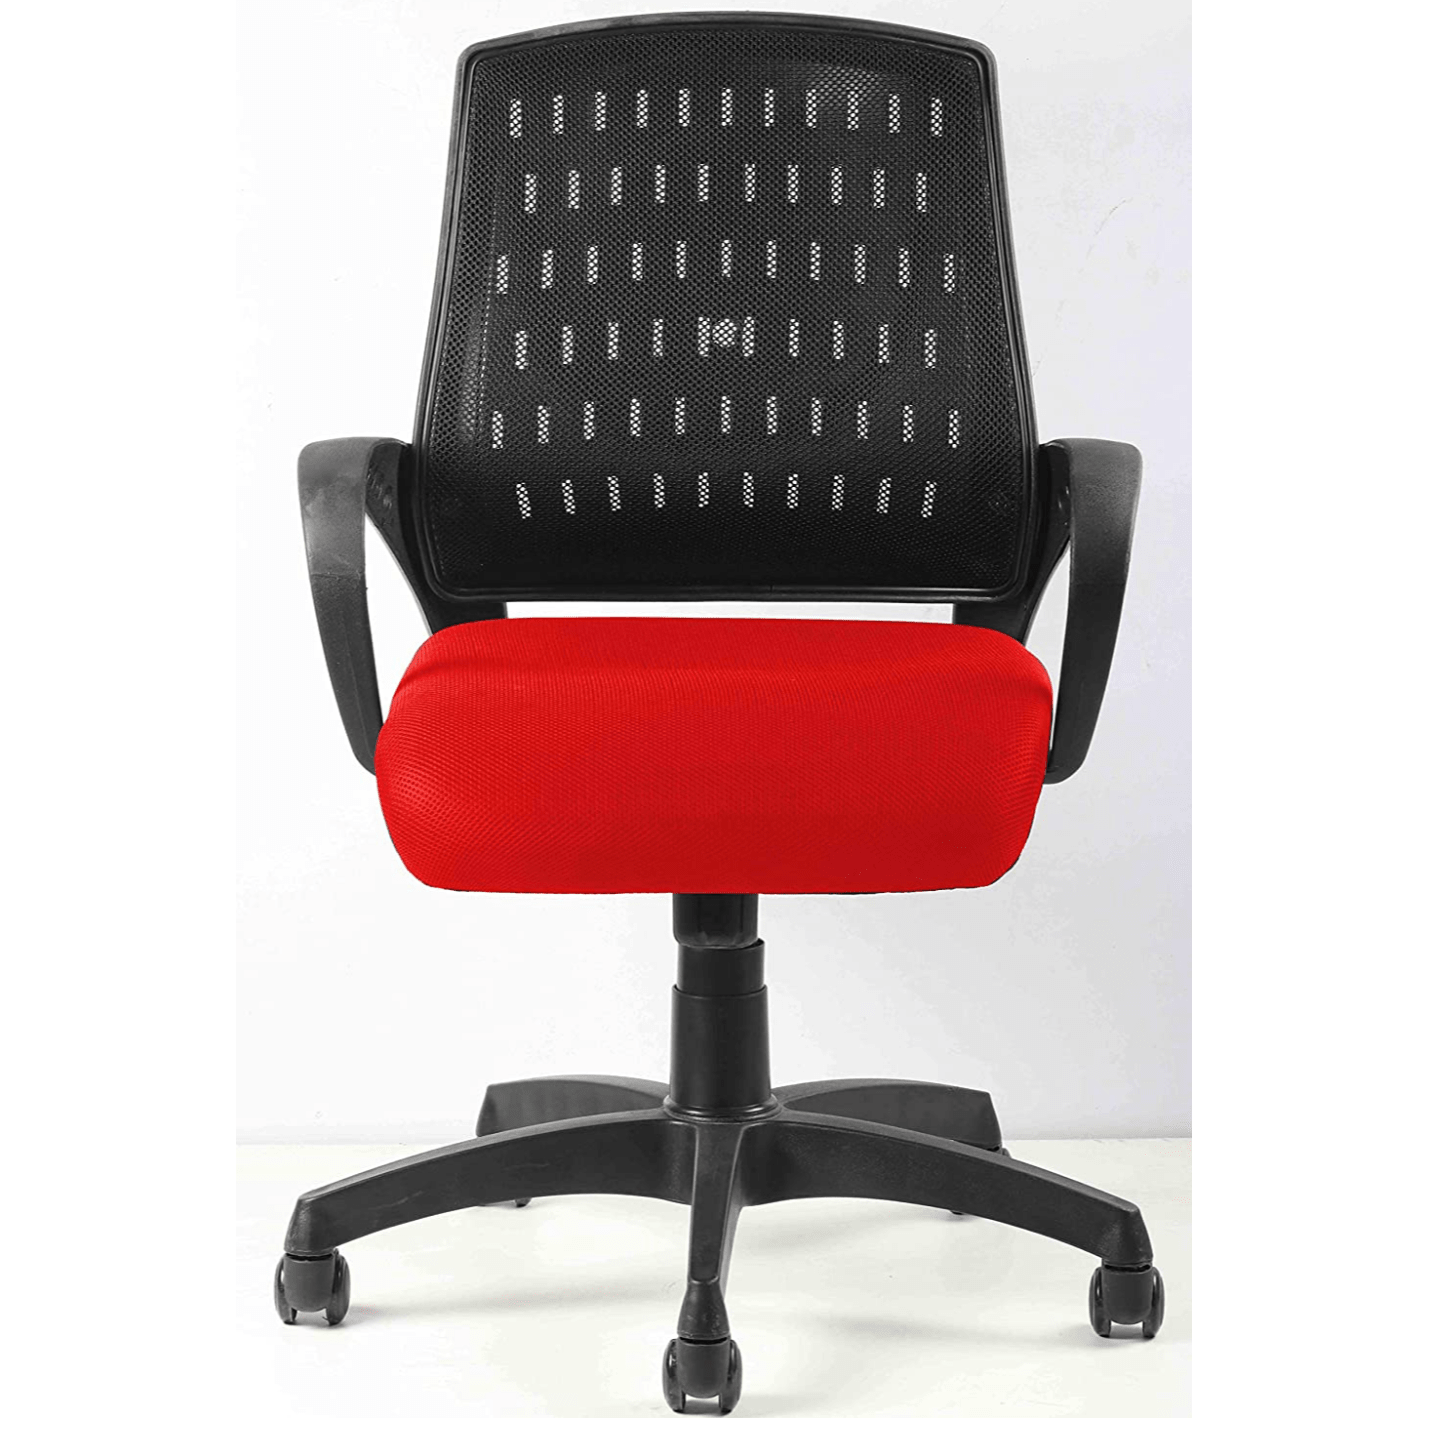 Modern Home Office Chair Model- Amazon